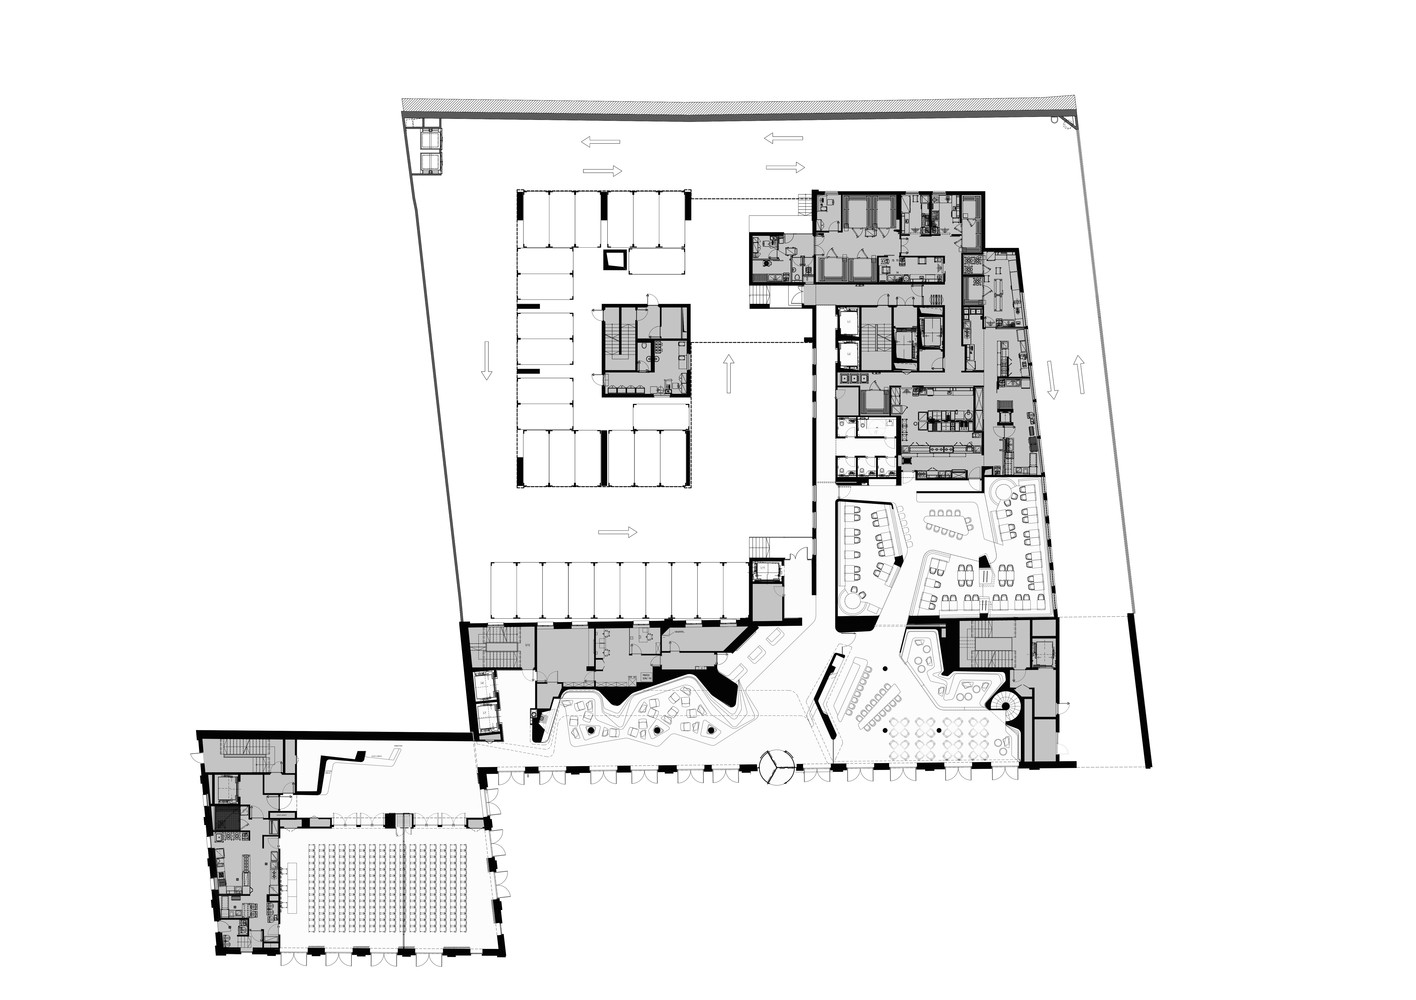 Ground_Floor_Plan.jpg